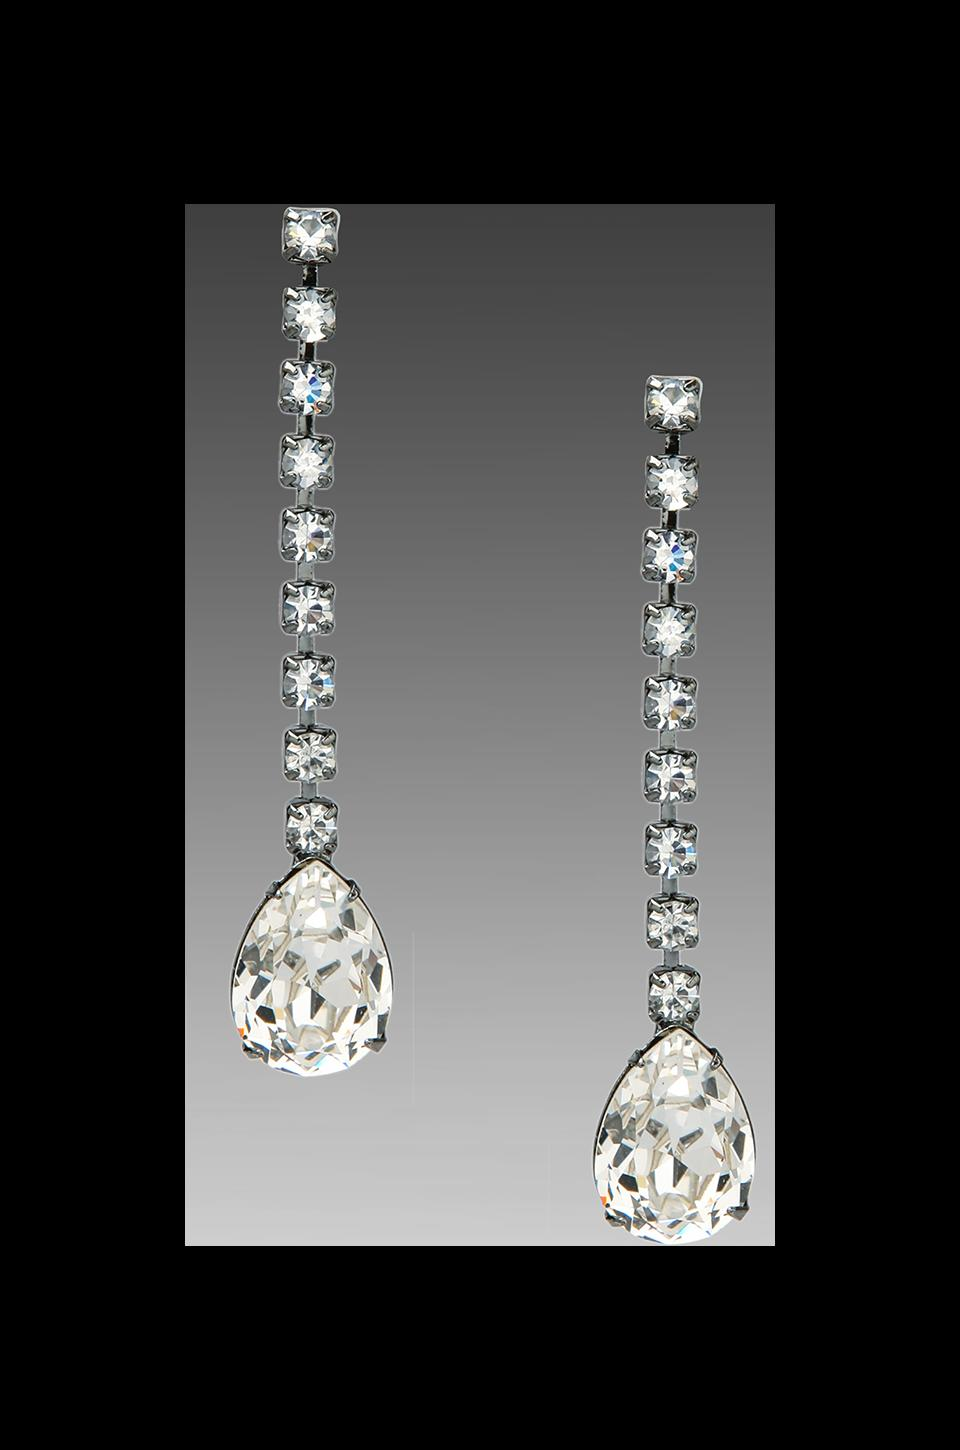 Kenneth Jay Lane Rhinestone Drop Earrings in Gunmetal